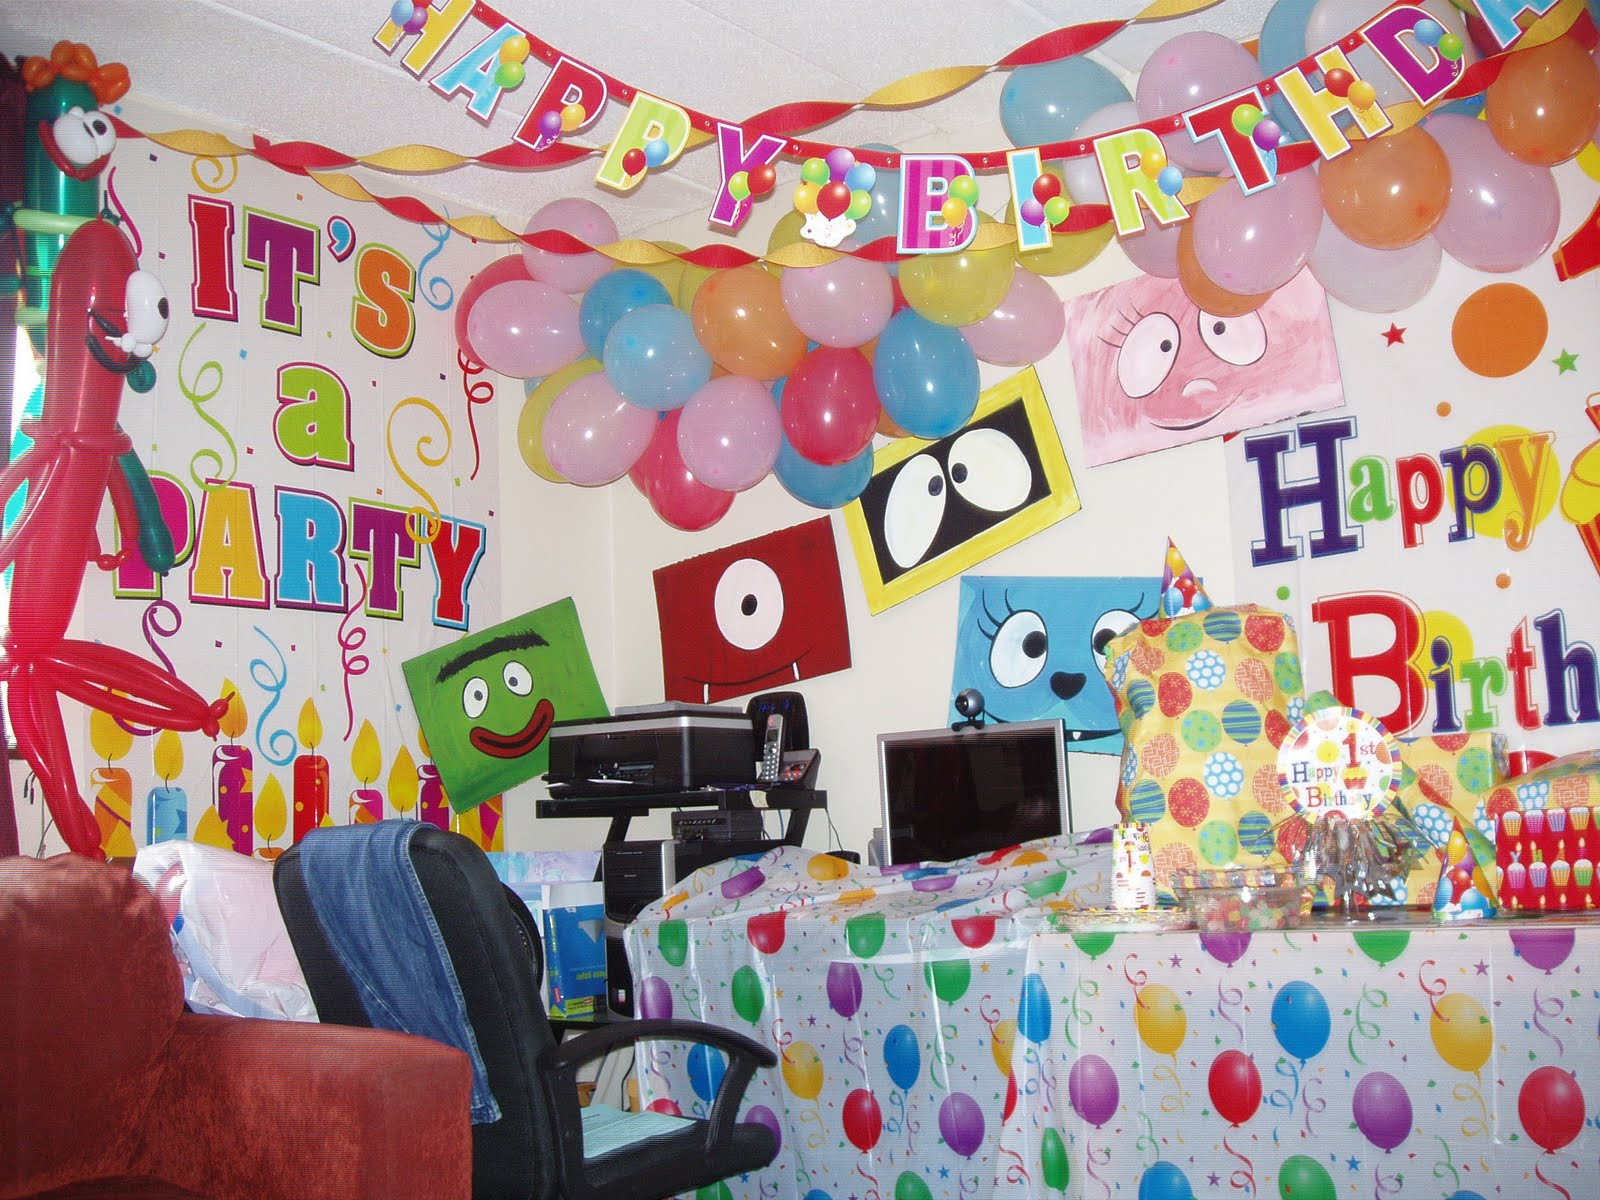 Birthday party decorations photograph katabolic designs bl for 1st birthday decoration ideas